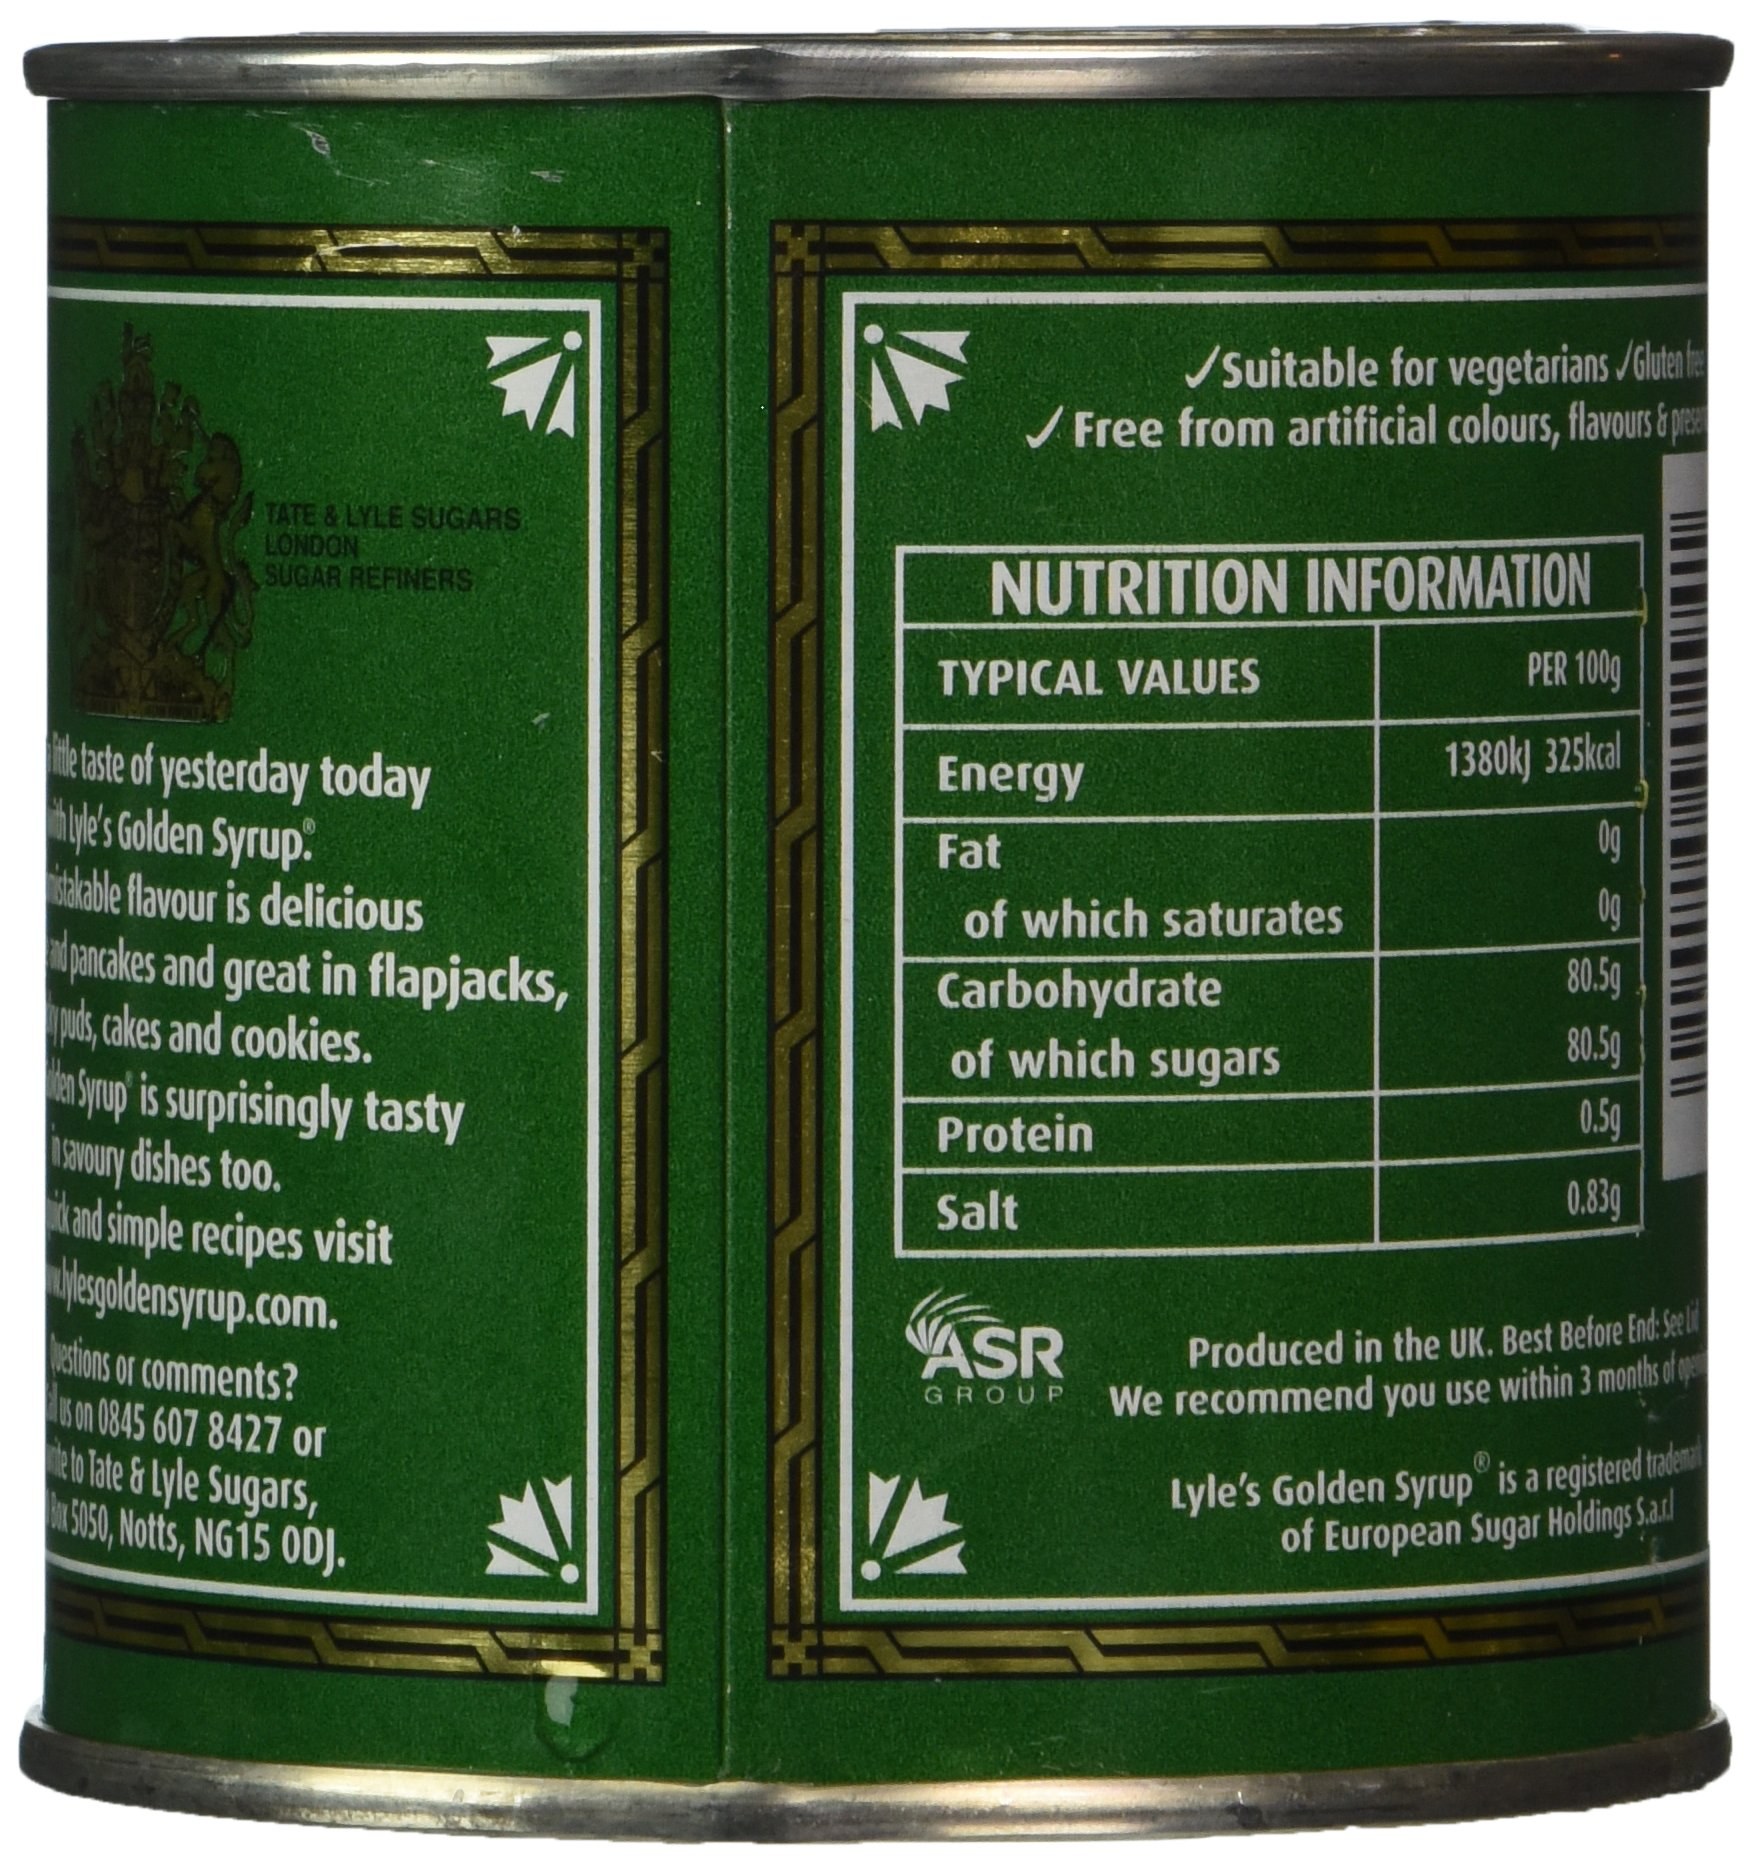 Tate & Lyle Golden Syrup - Case of 12 X 454 Gram Containers by Tate & Lyle (Image #4)